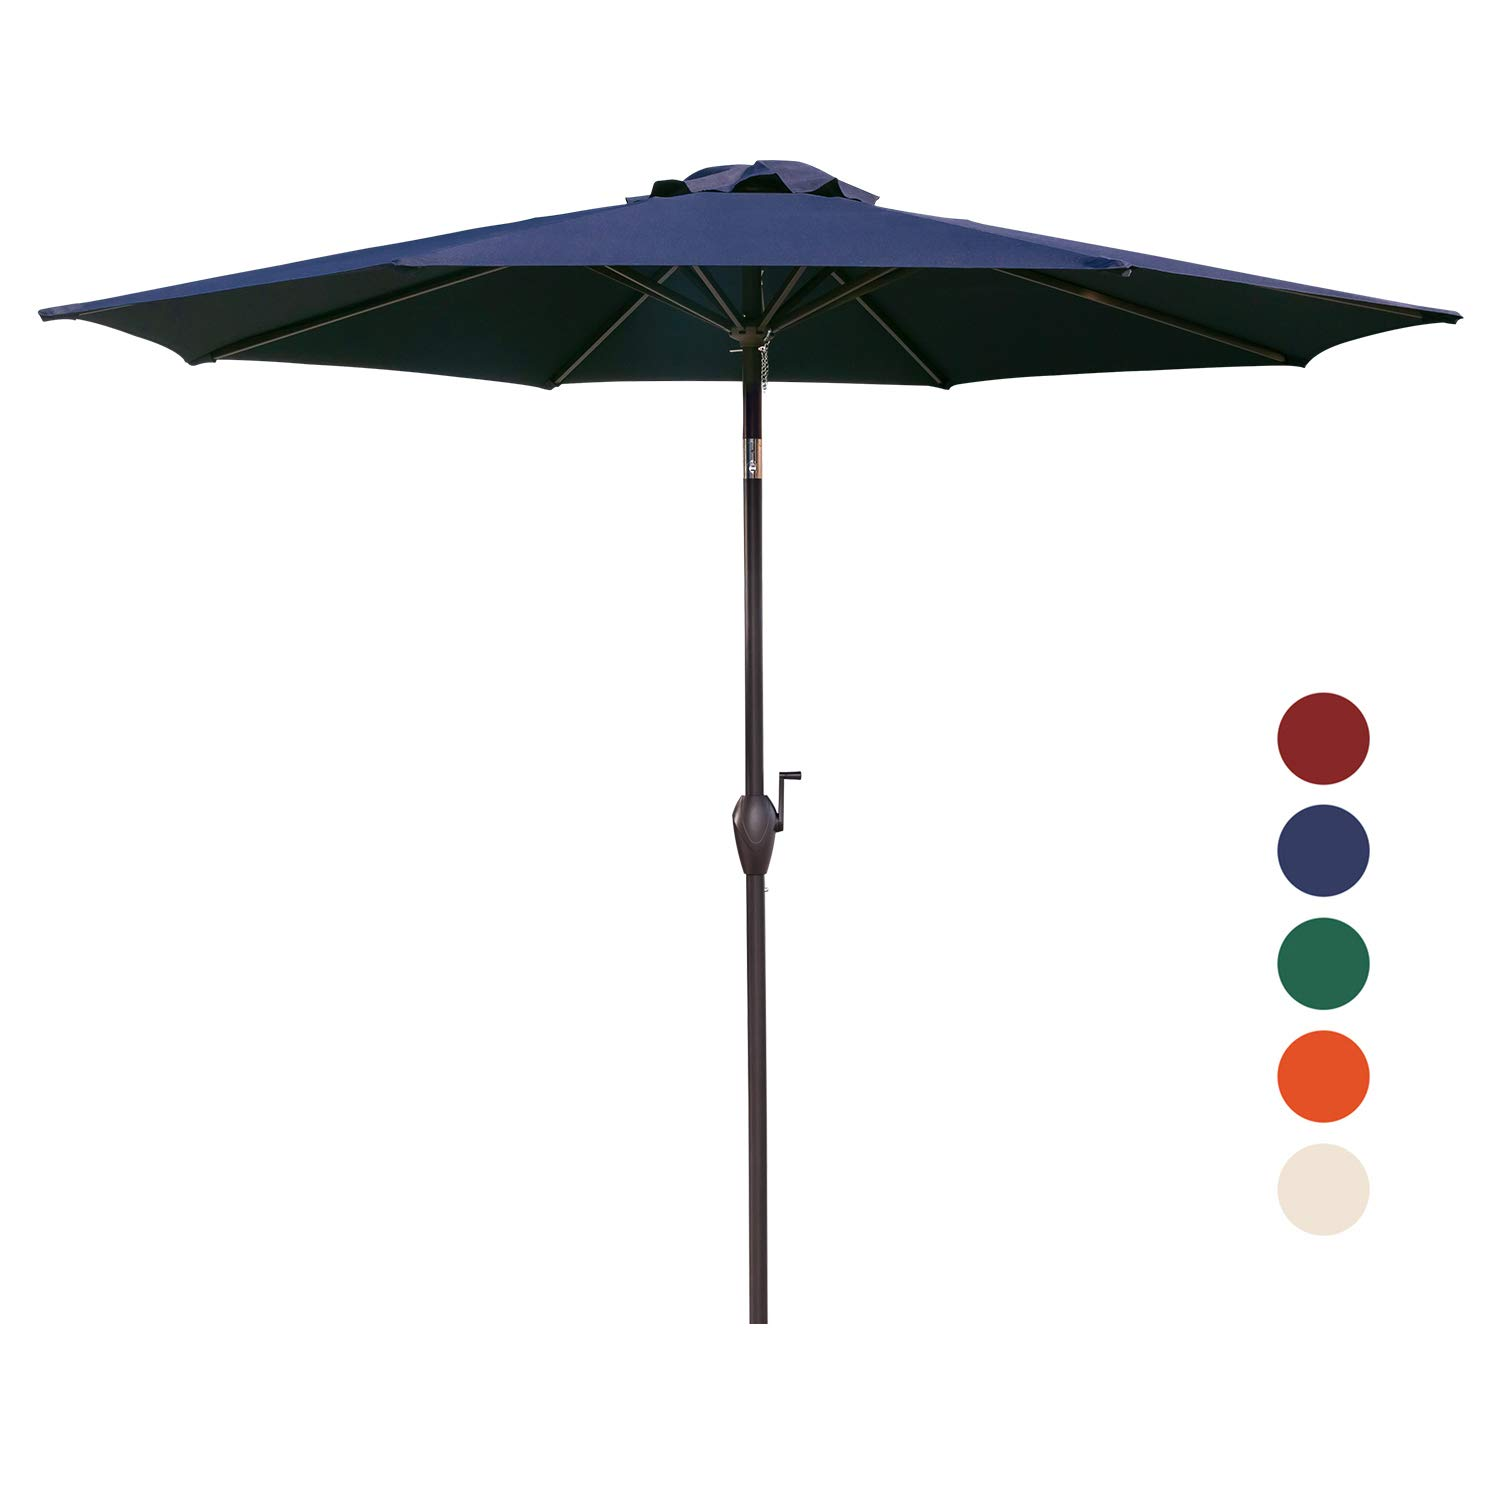 KINGYES 9Ft Patio Table Umbrella Outdoor Umbrella with Push Button Tilt and Crank for Commercial Event Market, Garden, Deck,Backyard Swimming and Pool (Navy)